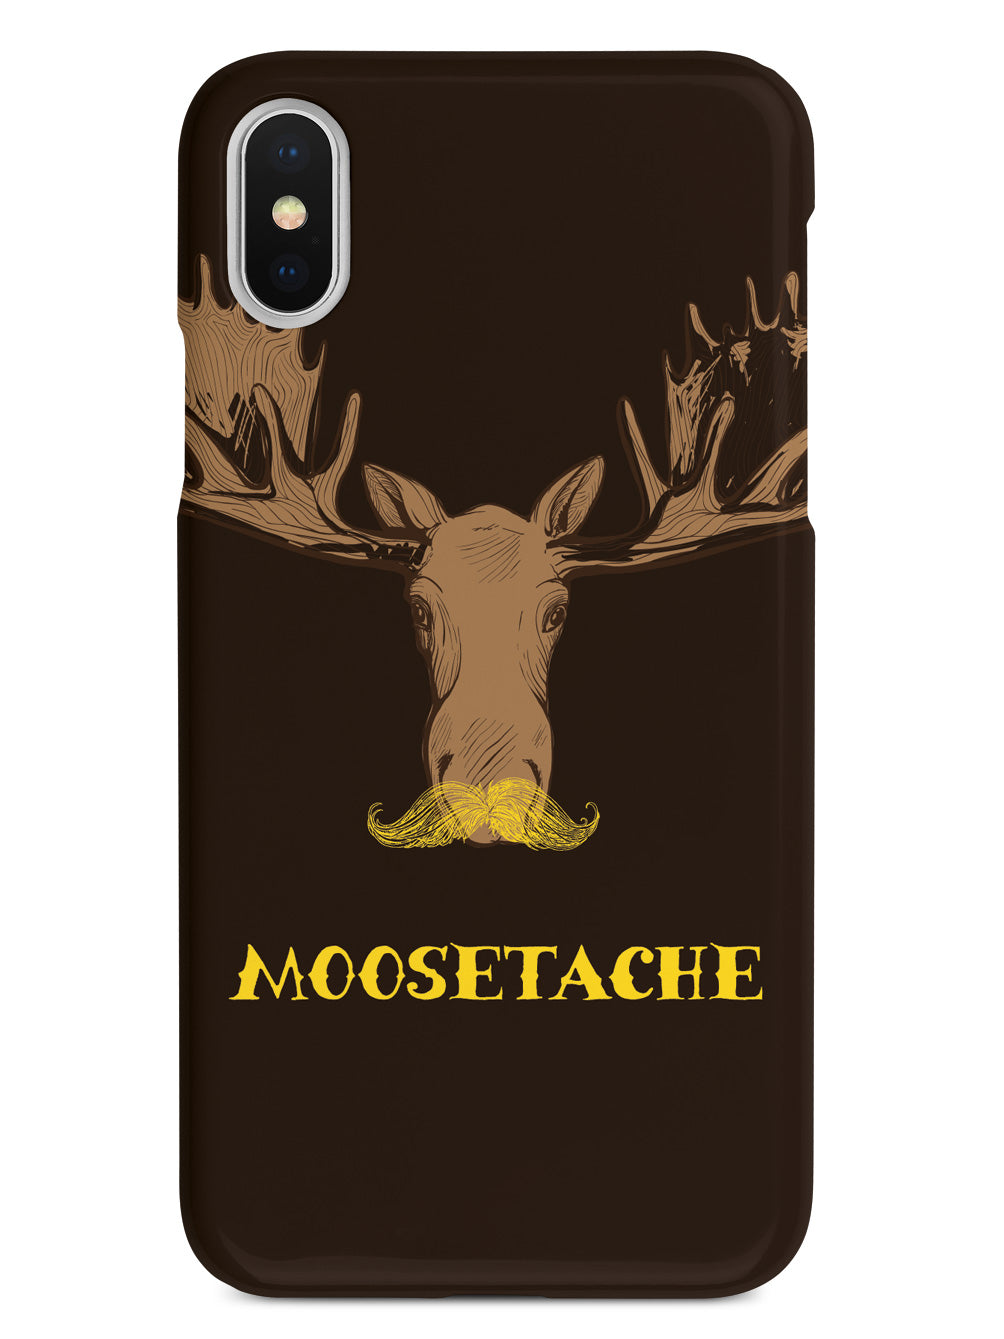 Moosetache - Mustache Case